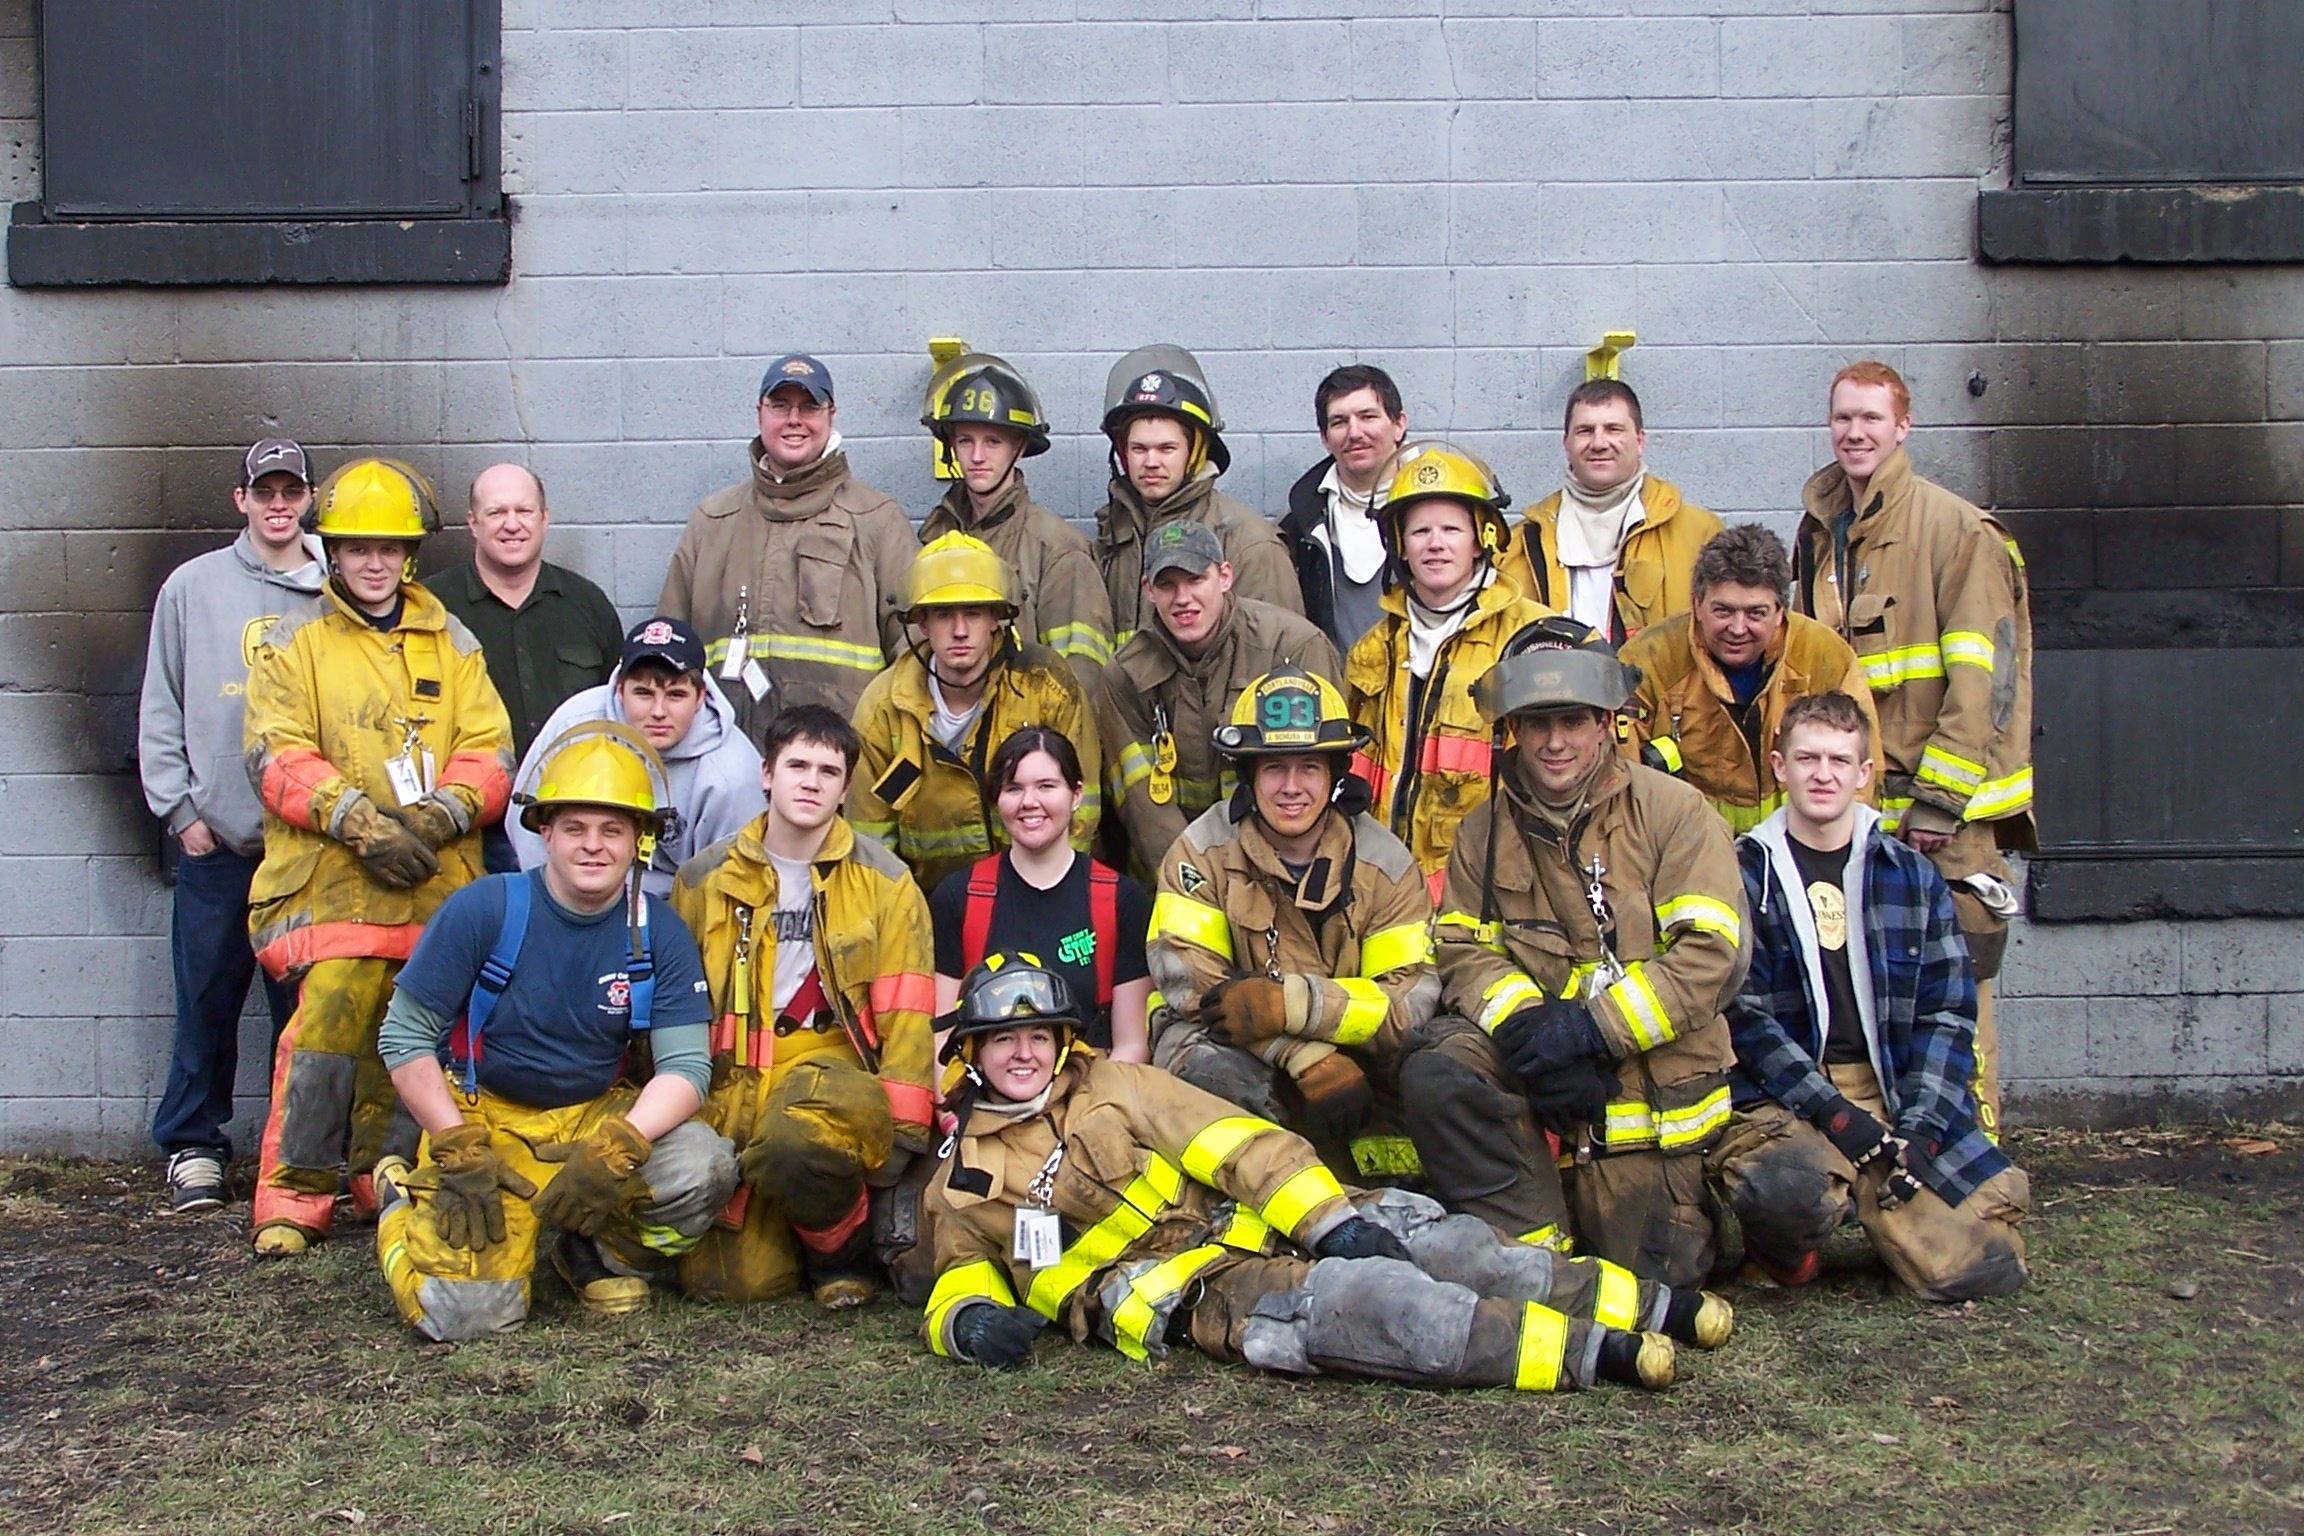 A group of firefighters pose for a picture in front of a stone wall.